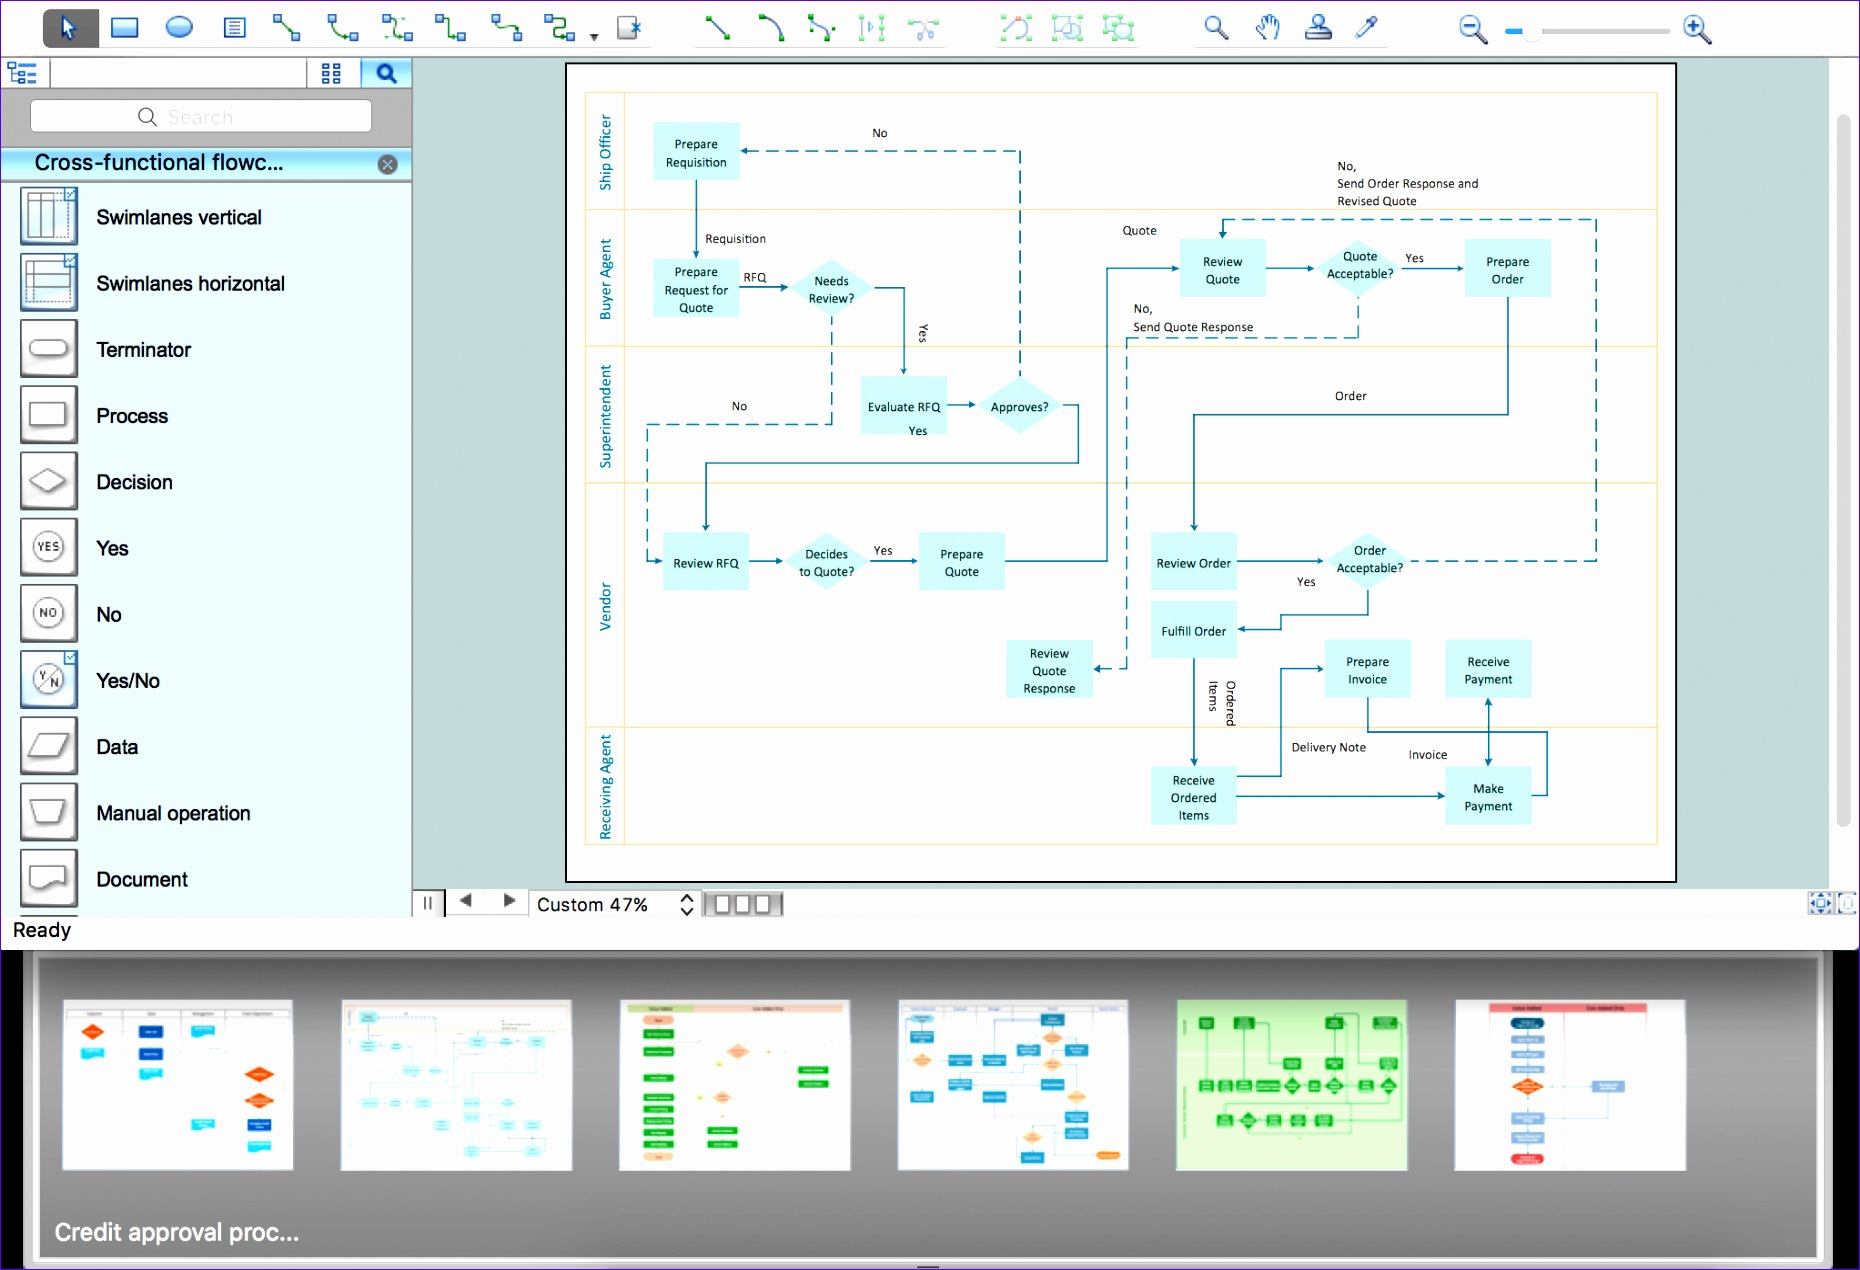 Sample flow chart template free pdf design process flowchart excel process flow chart countersink callout excel process flow chart template dwutd inspirational process flowchart draw nvjuhfo Image collections